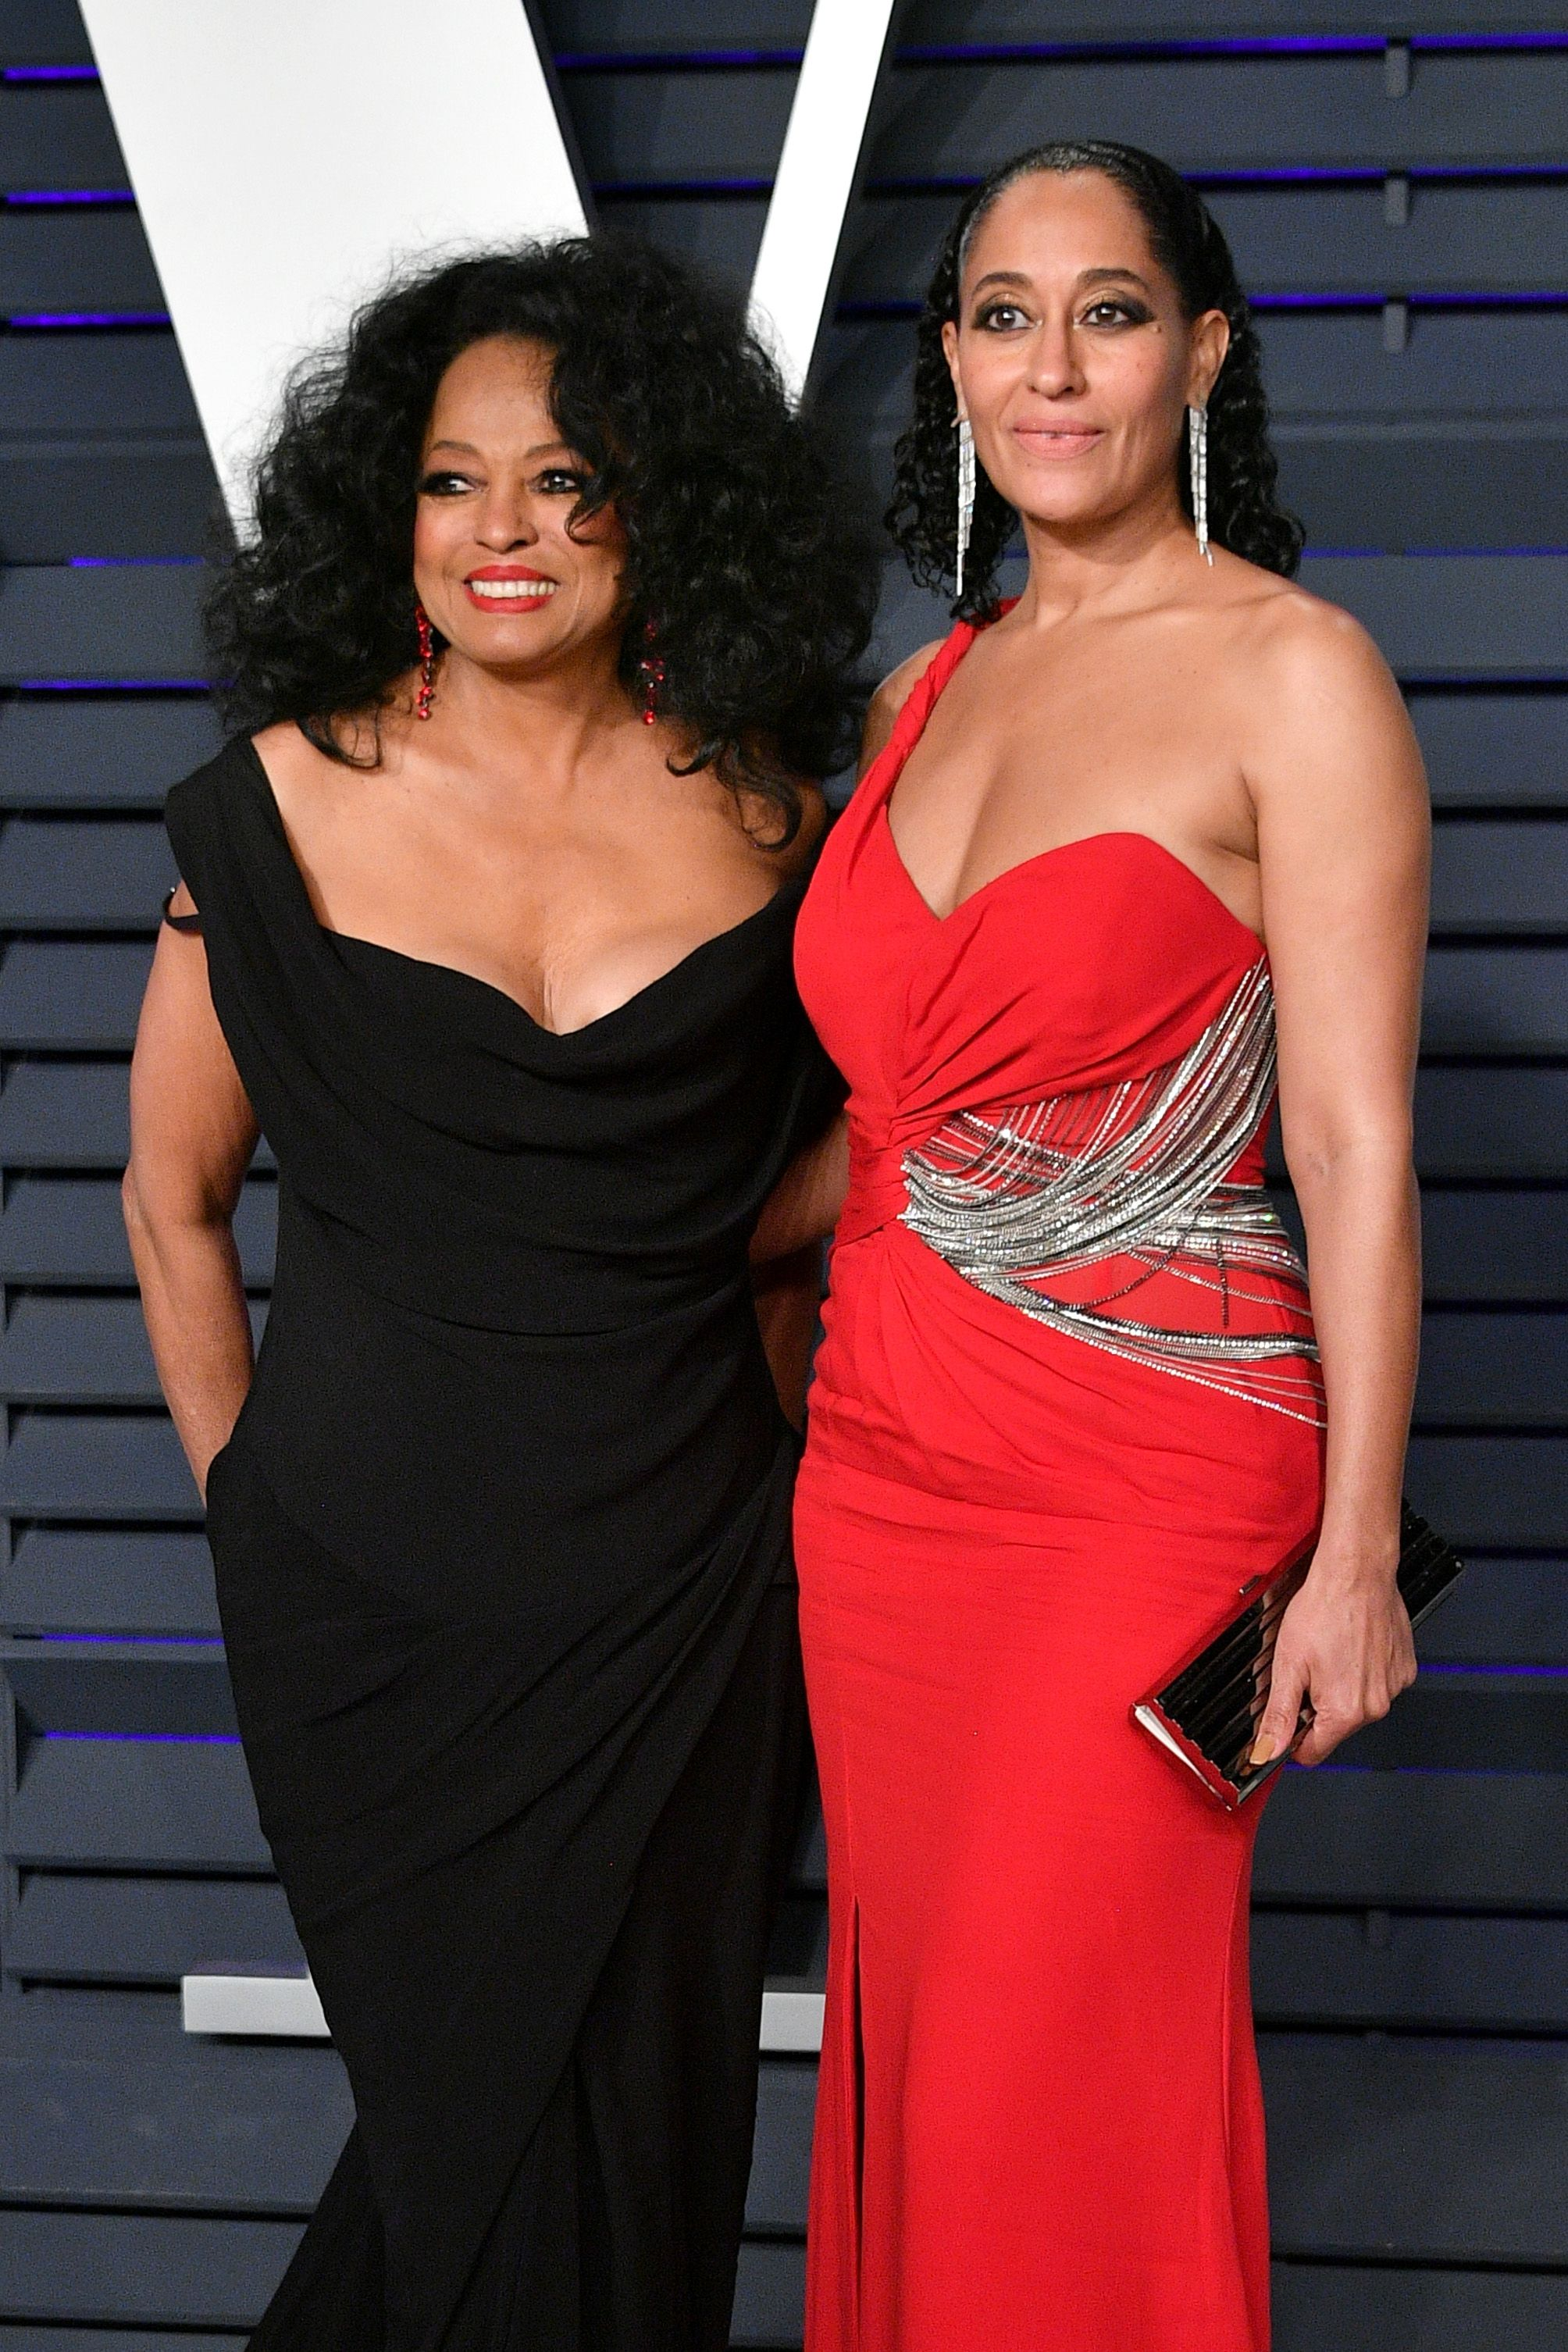 Diana Ross & Tracee Ellis Ross at the Vanity Fair Oscar Party on February 24, 2019 in California.   Source: Getty Images